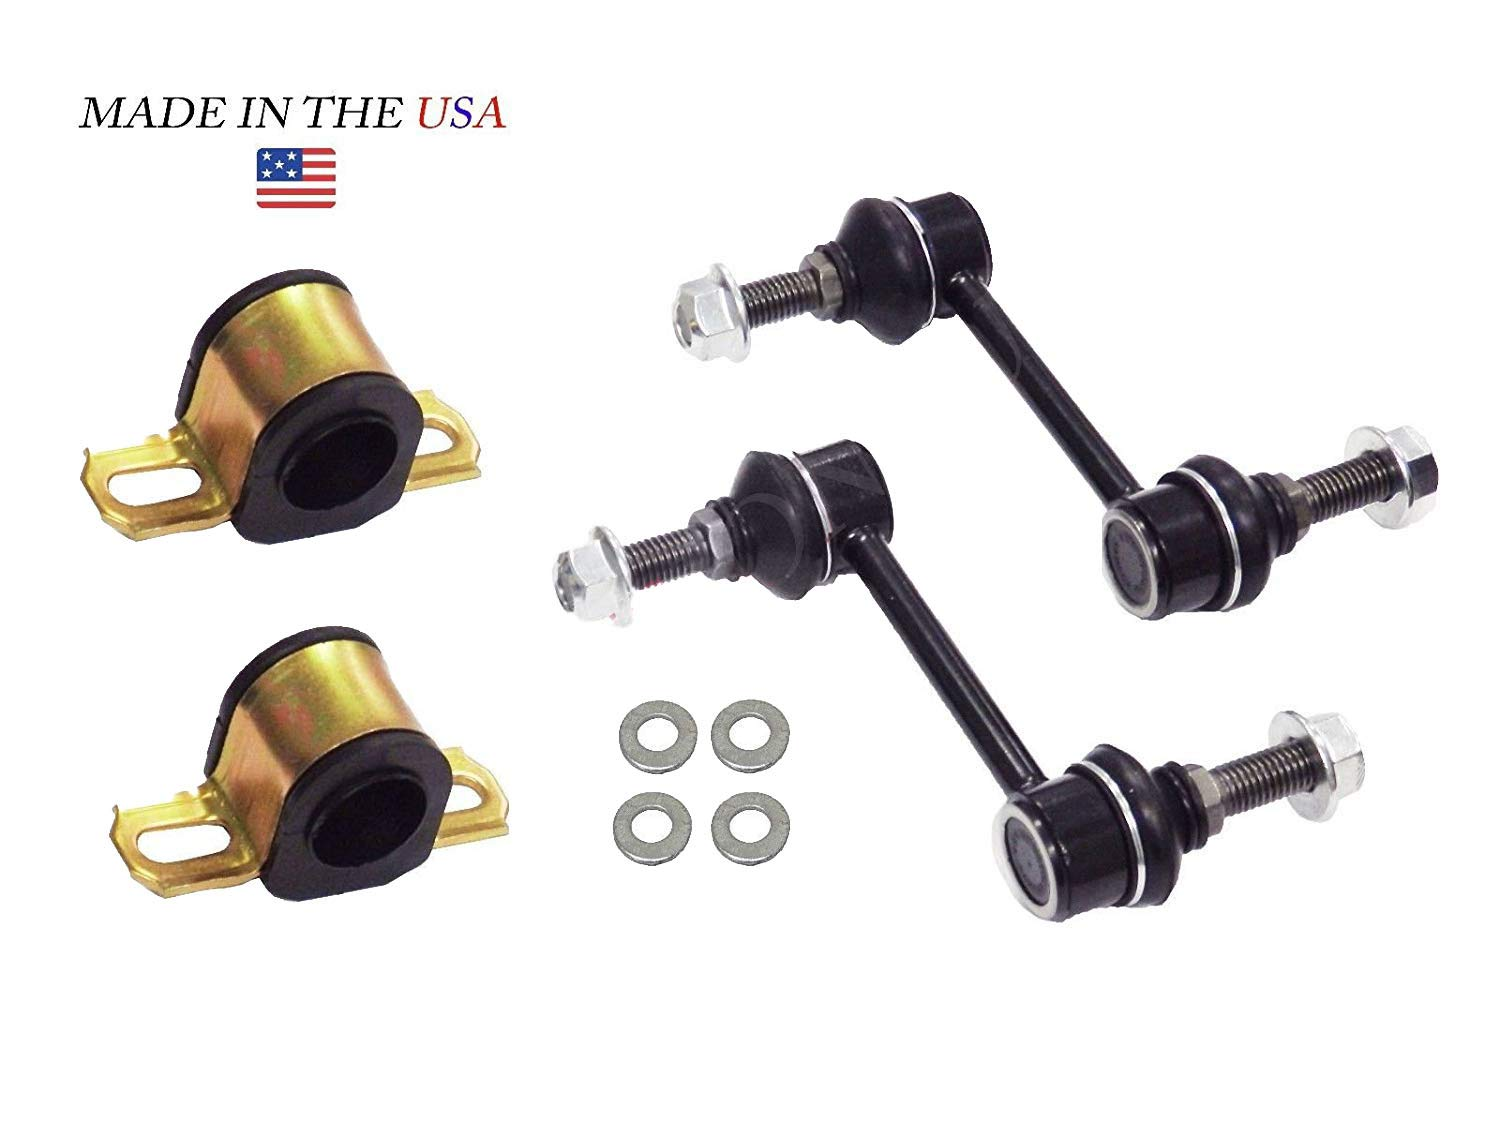 K750159 FITS Ford Edge Lincoln MKX Suspension Dudes 4PC Front SWAY BAR Link KIT with BUSHINGS